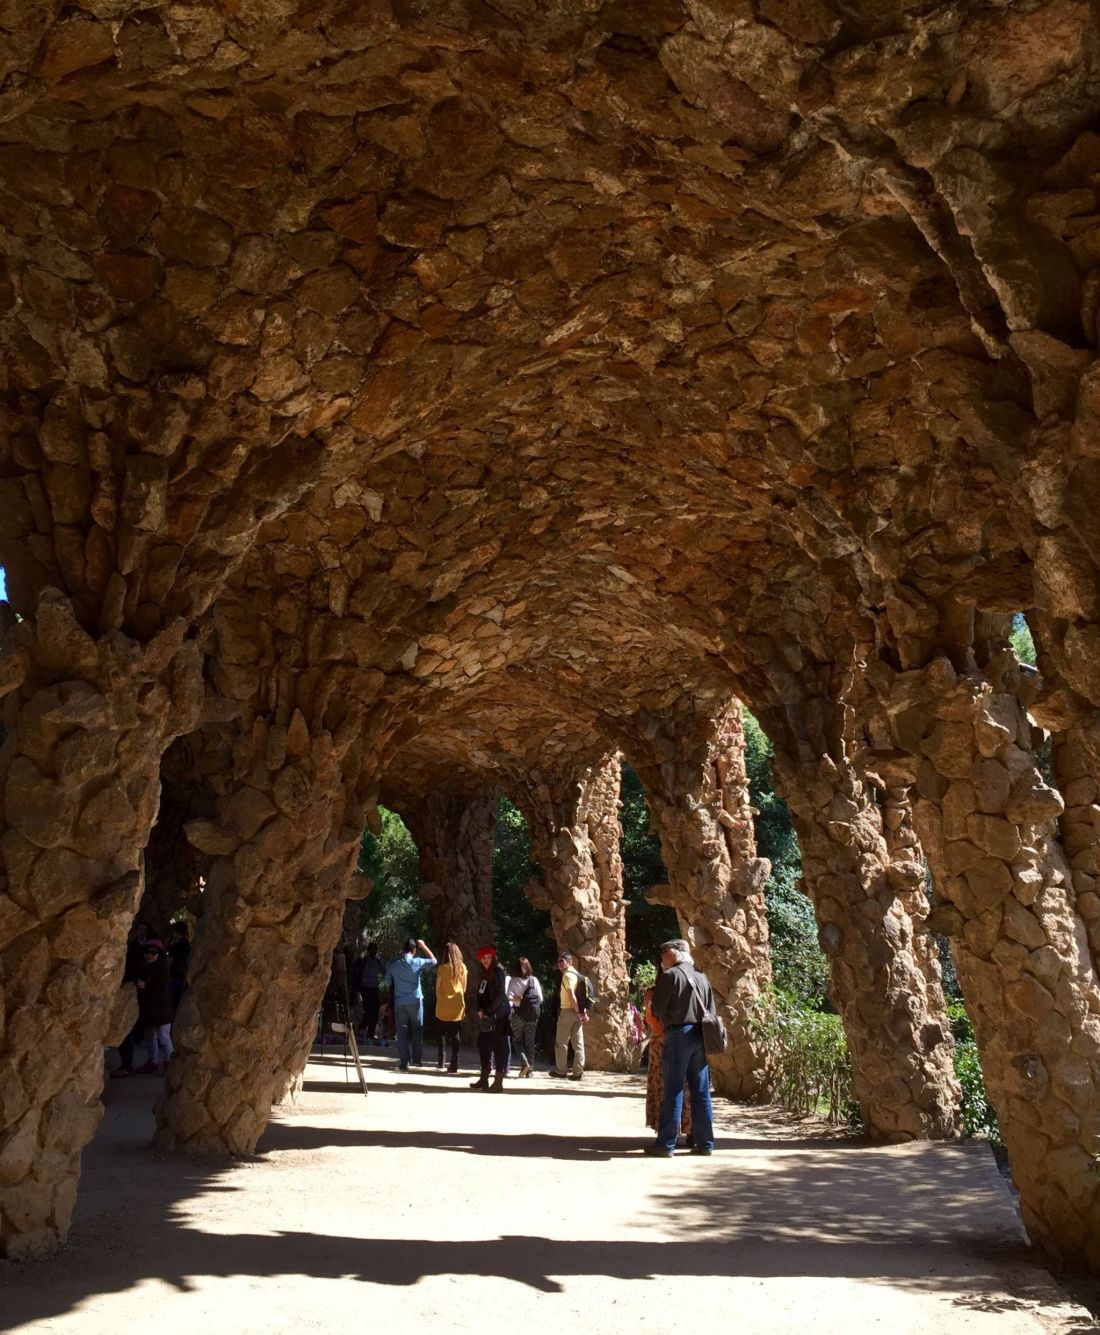 Architecture of Parc Guell, Barcelona